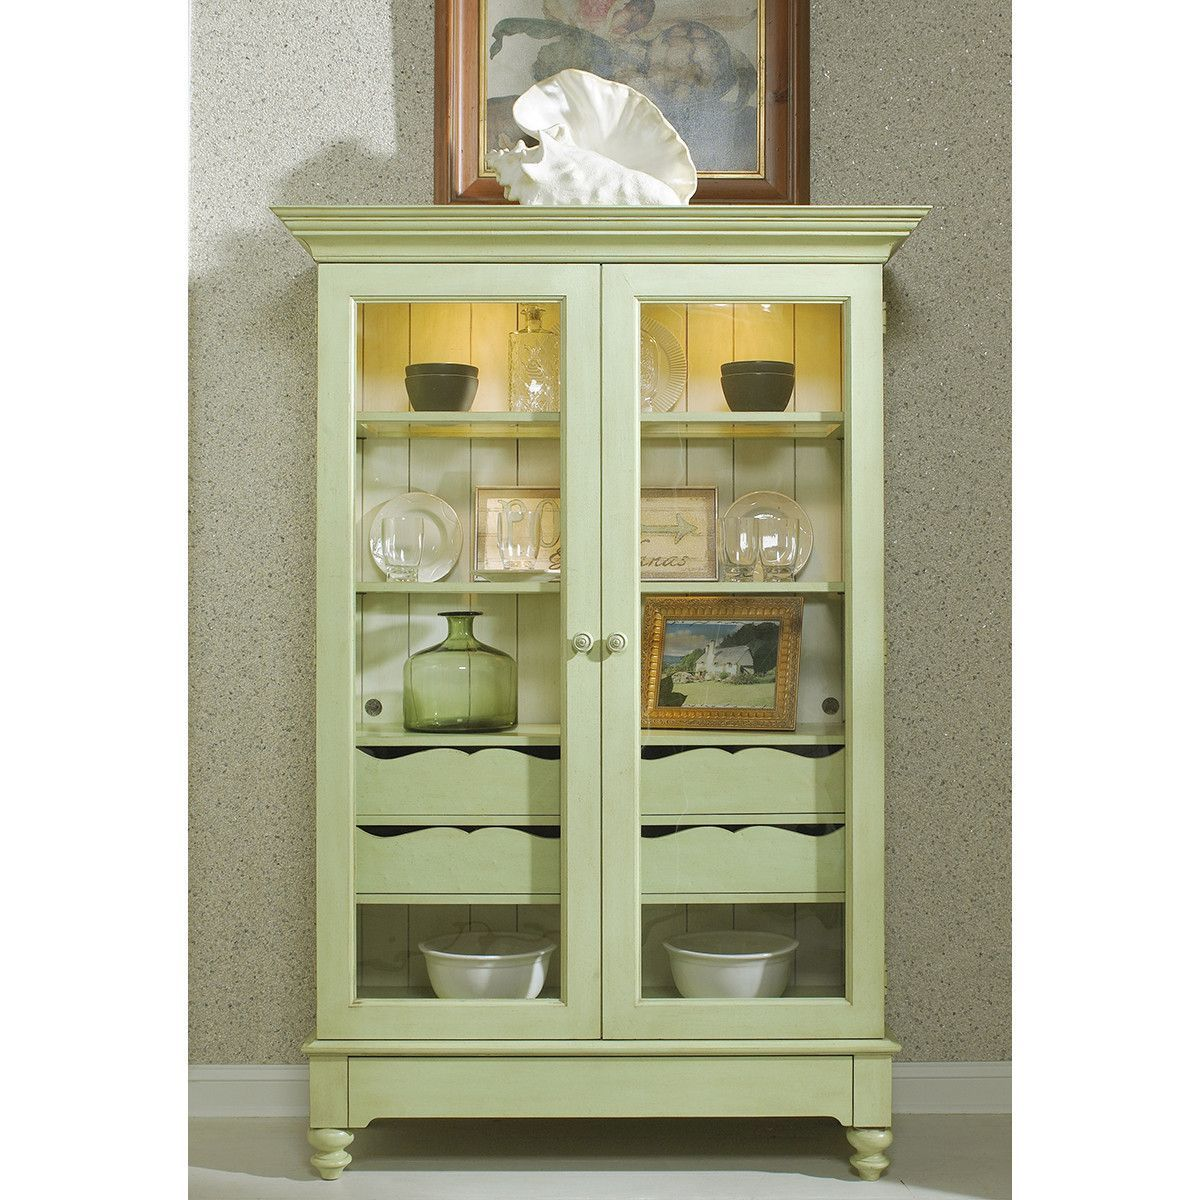 Fine furniture design summer home display cabinet dream home